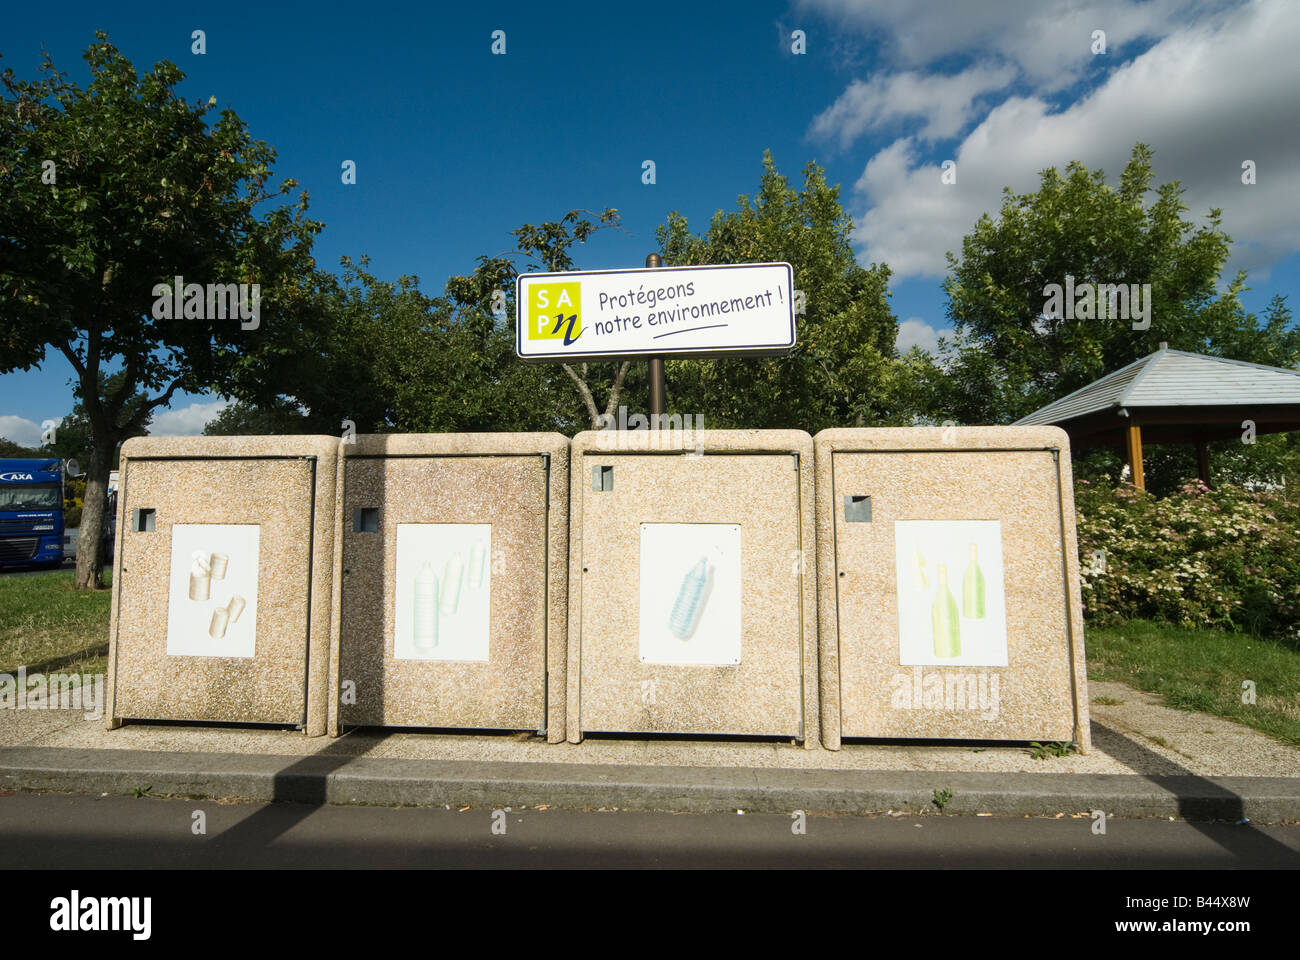 Waste recycling bins at an autoroute service area France - Stock Image